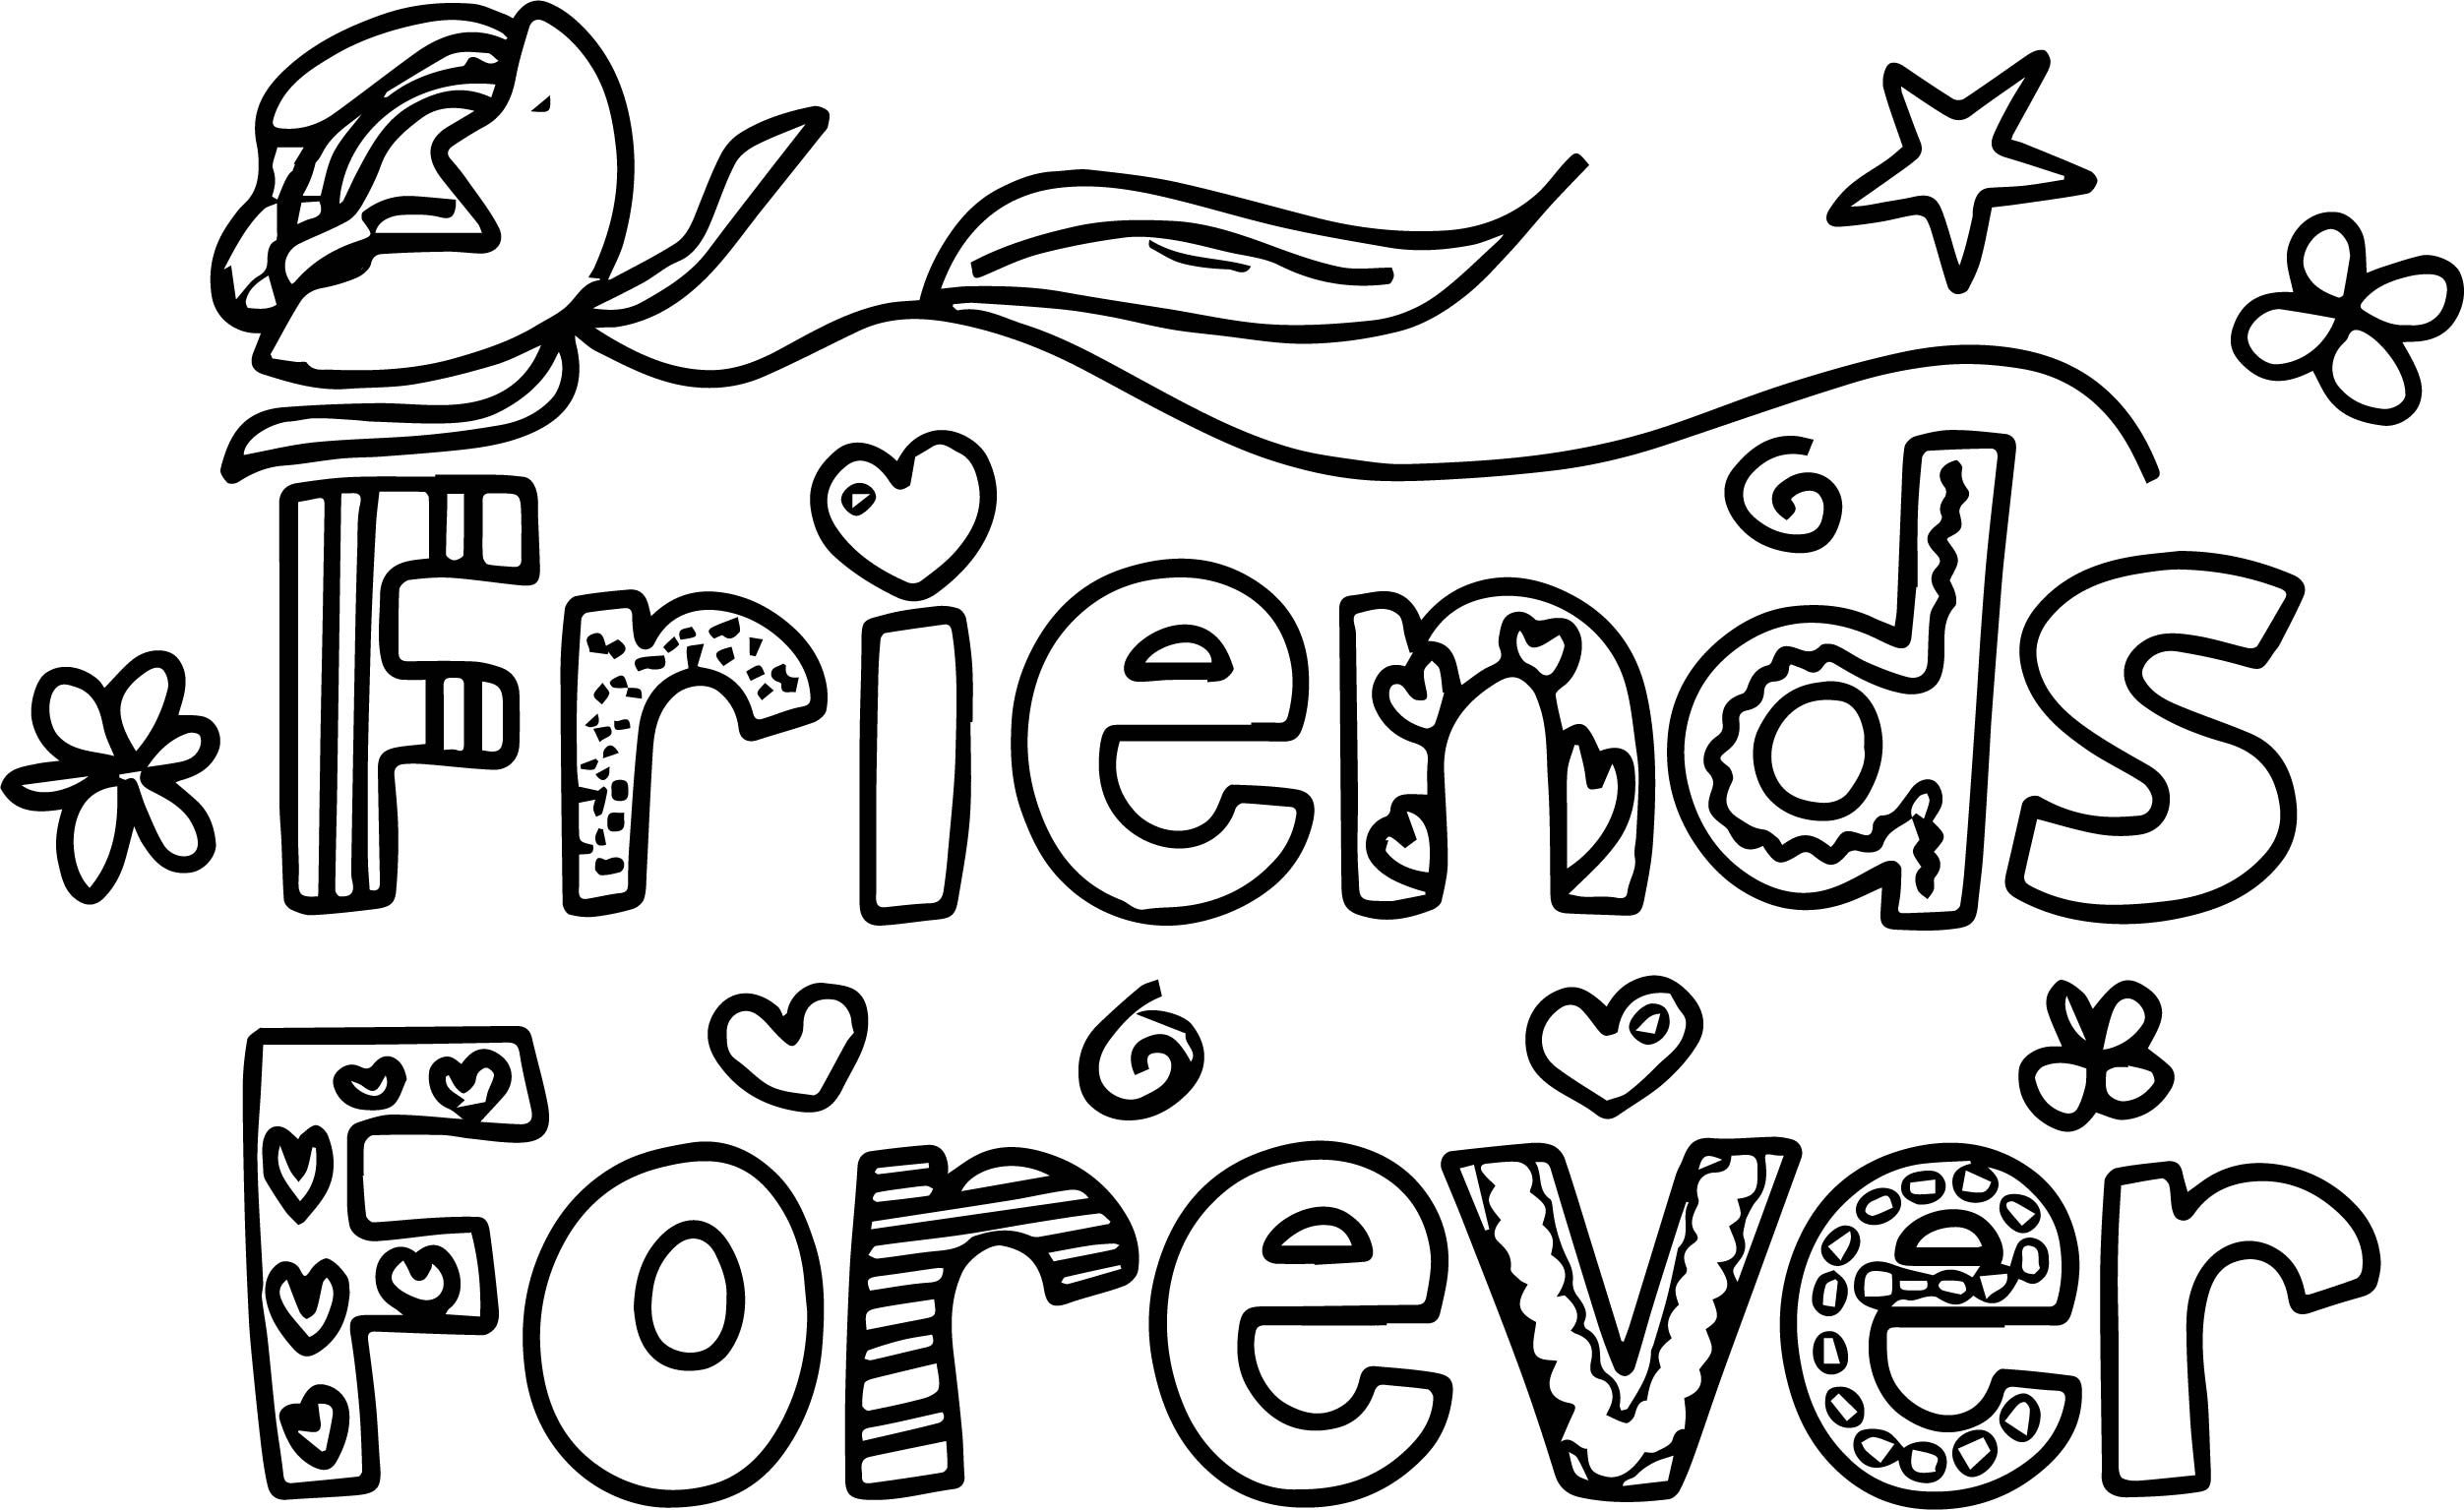 Nice Pal Of A Colorful Friends Forever Words With Designs Coloring Page Quote Coloring Pages Best Friend Drawings Coloring Pages Inspirational